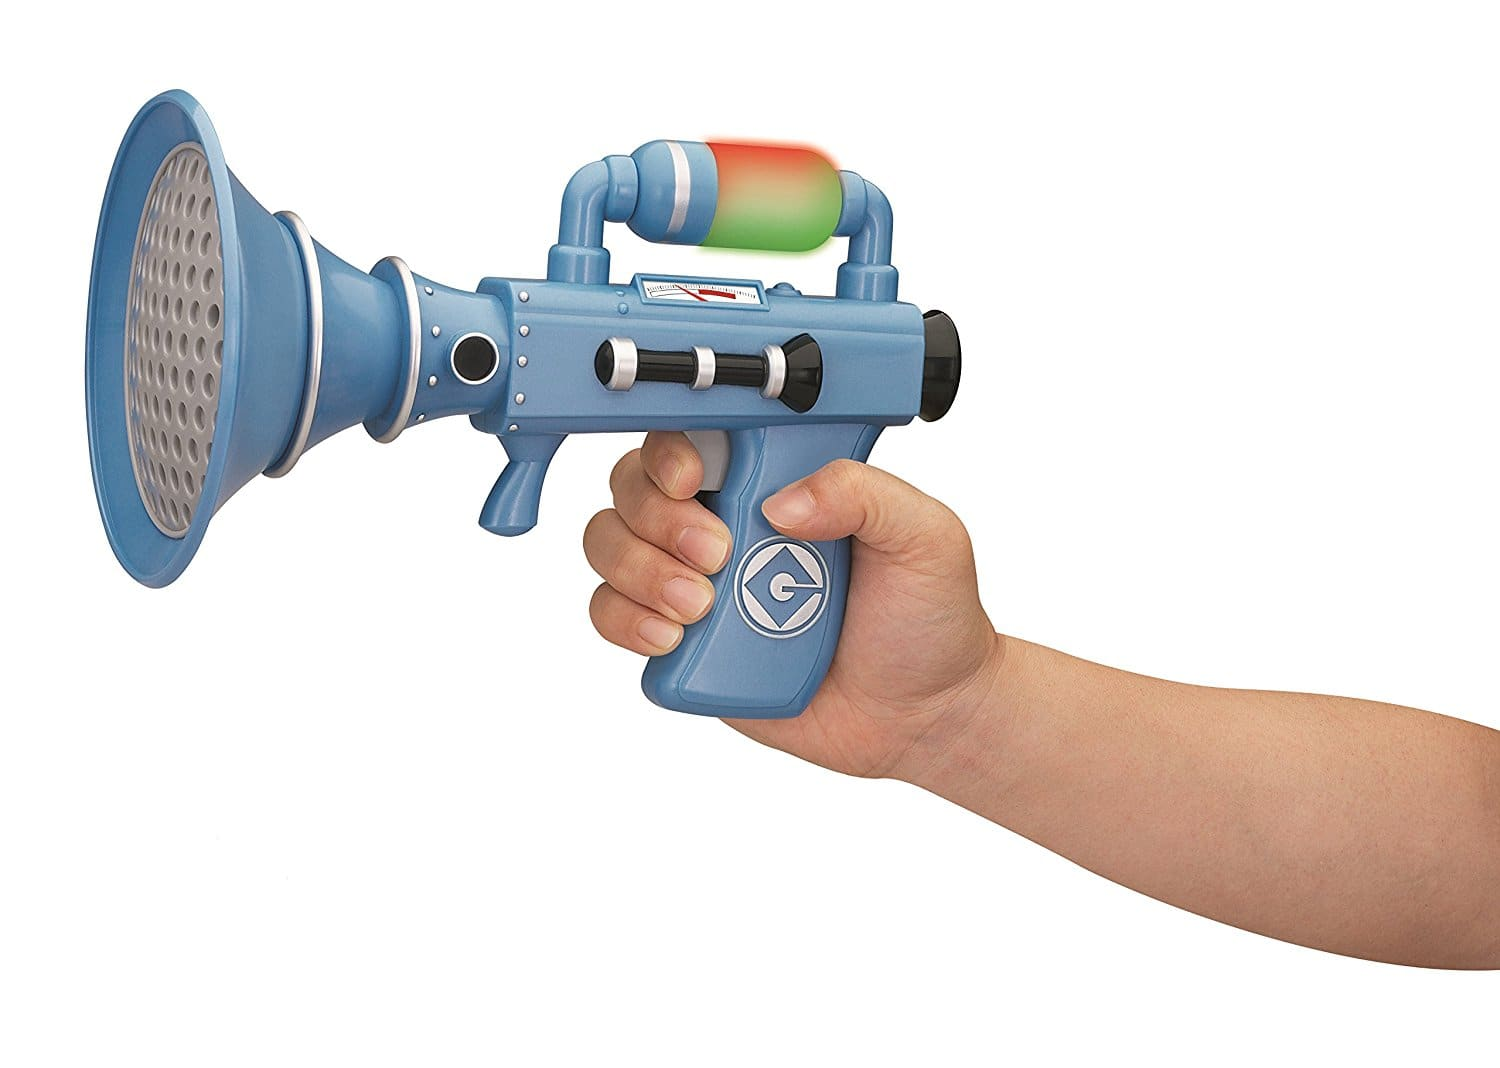 Despicable Me Fart Blaster. $12.80 (Walmart, Target or Amazon)